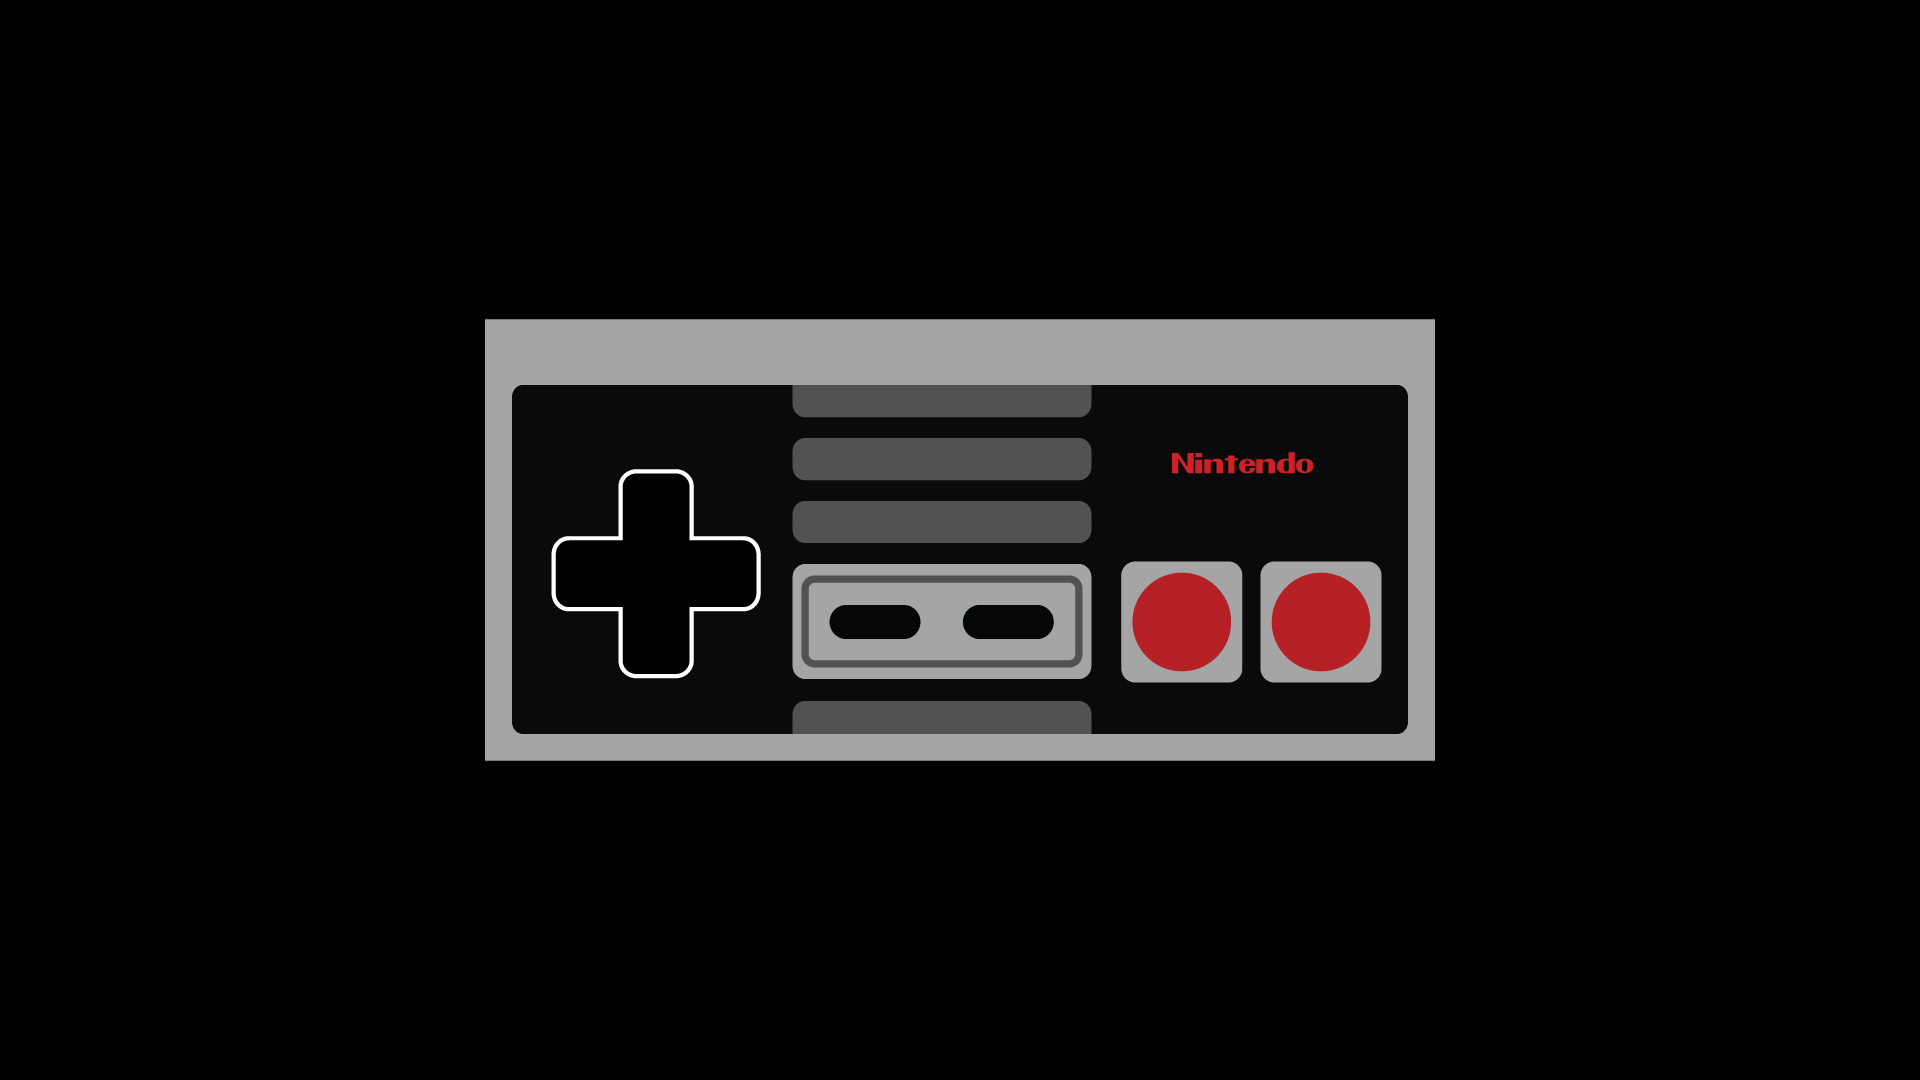 NES controller wallpaper by Techdrawer on DeviantArt